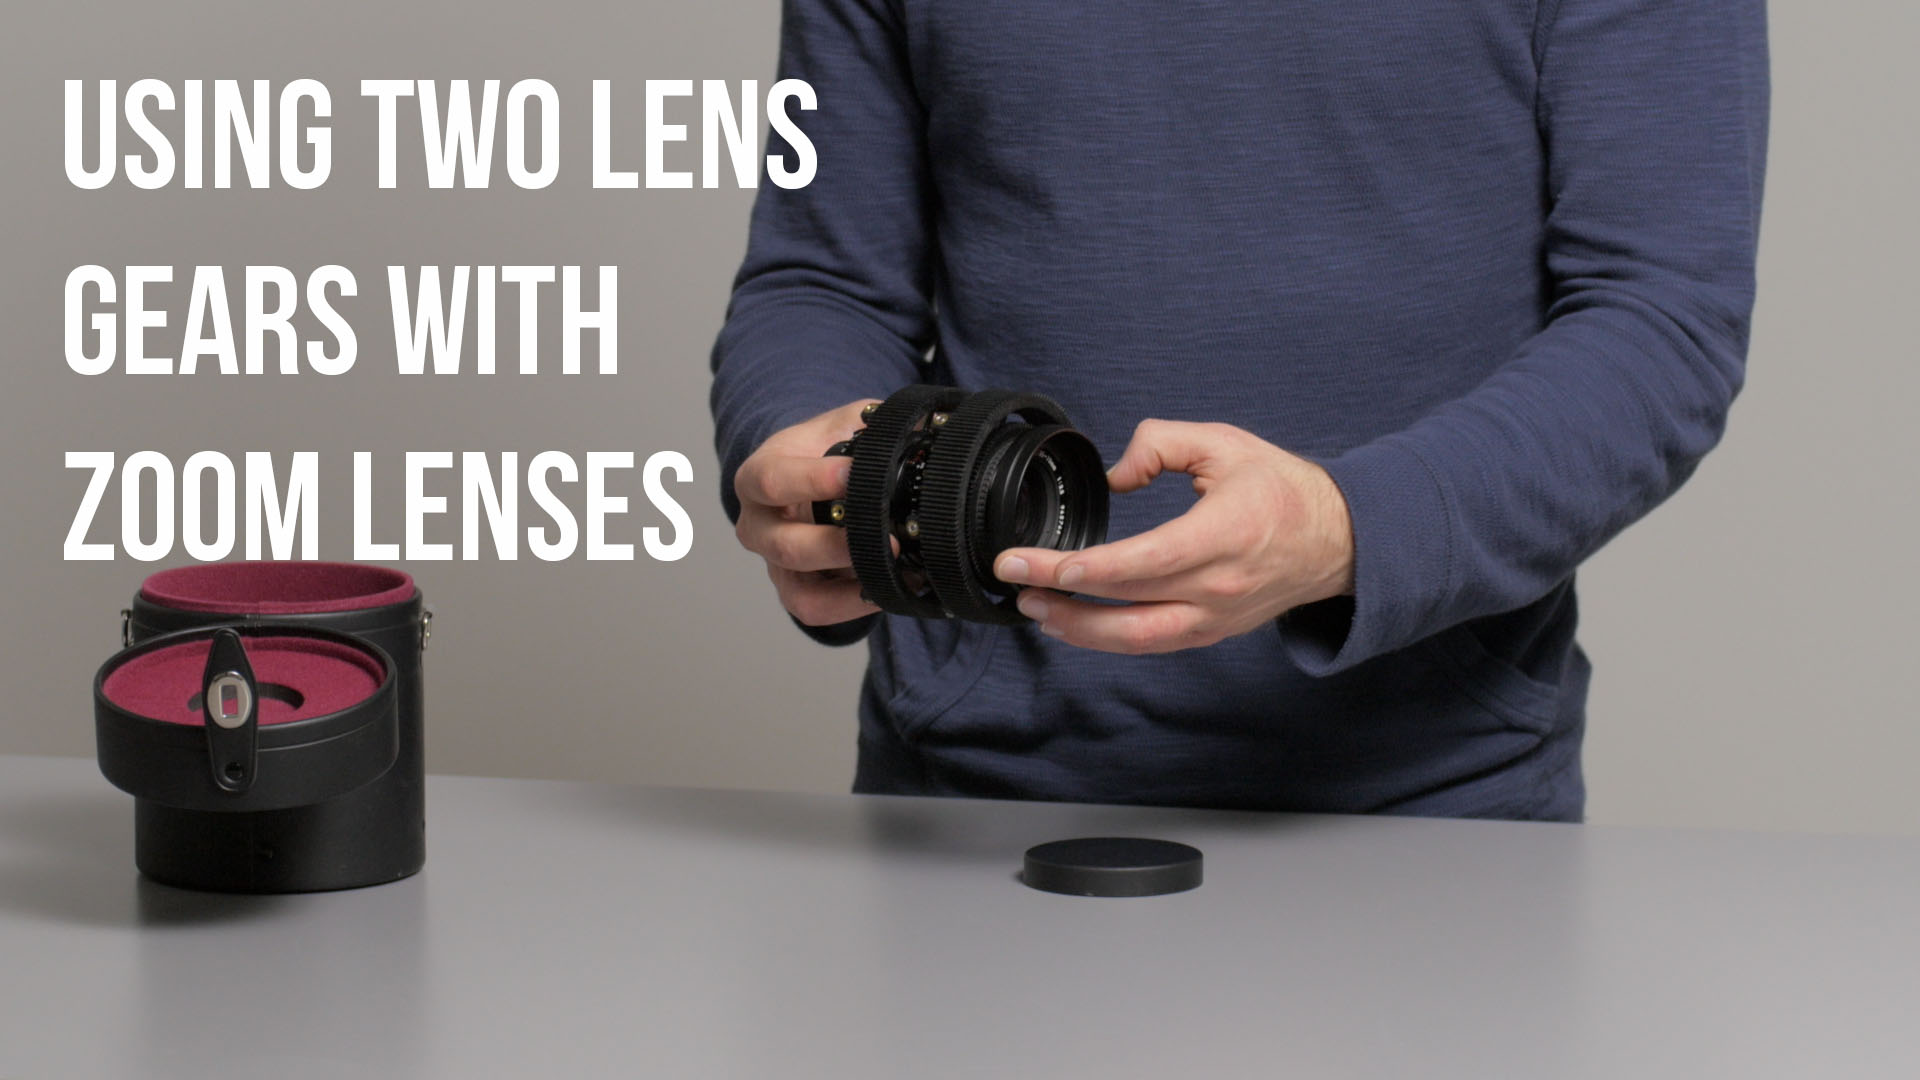 Using Two Lens Gears on a Zoom Lens